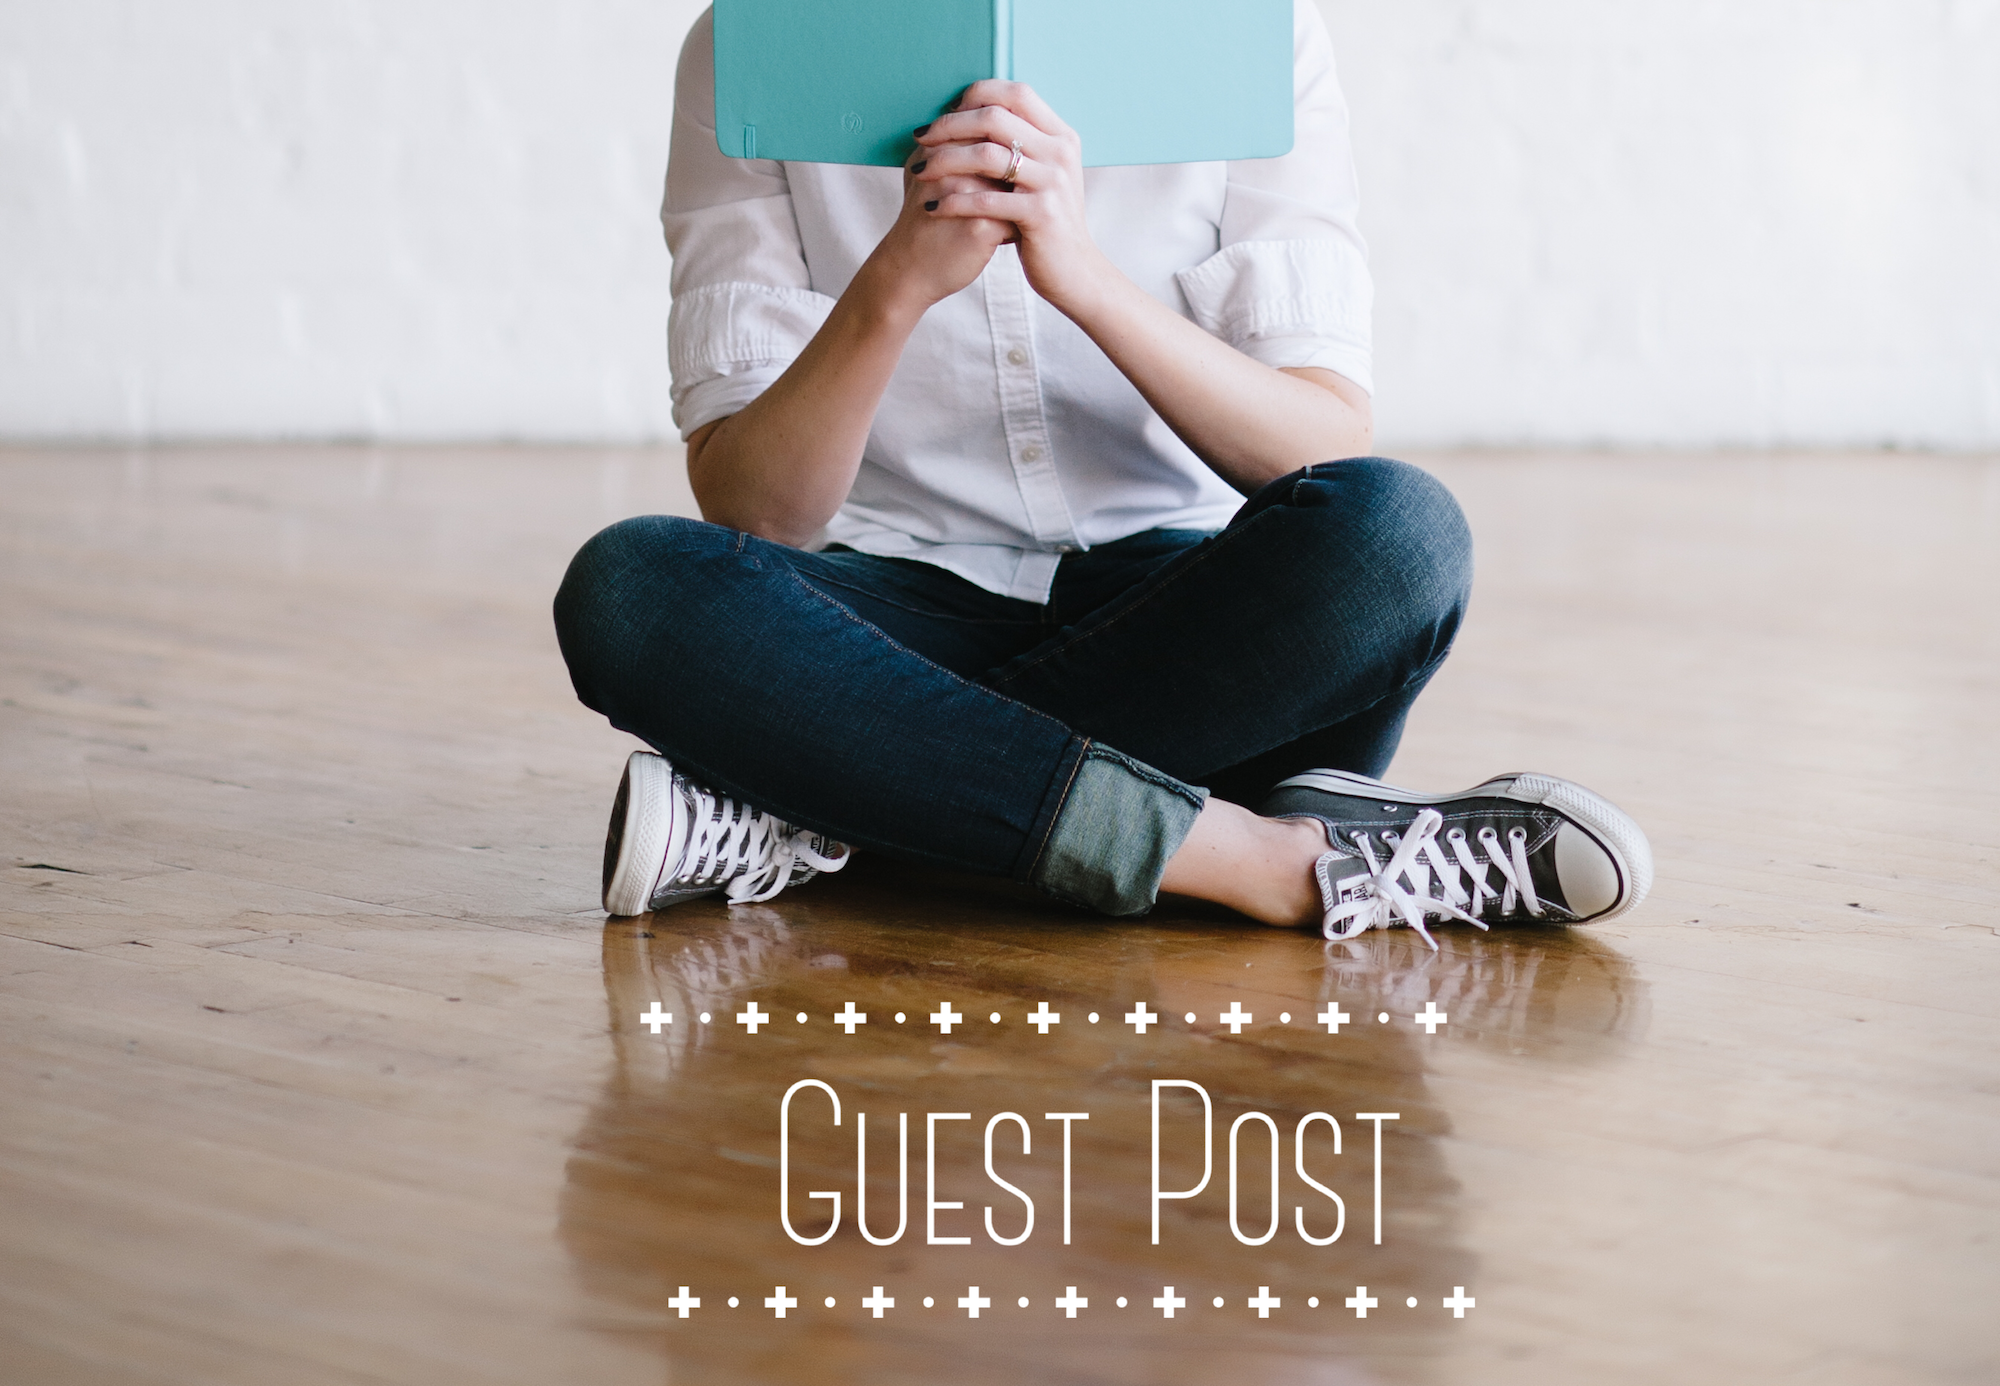 Guest Post TF 24 and CF 19 Blog